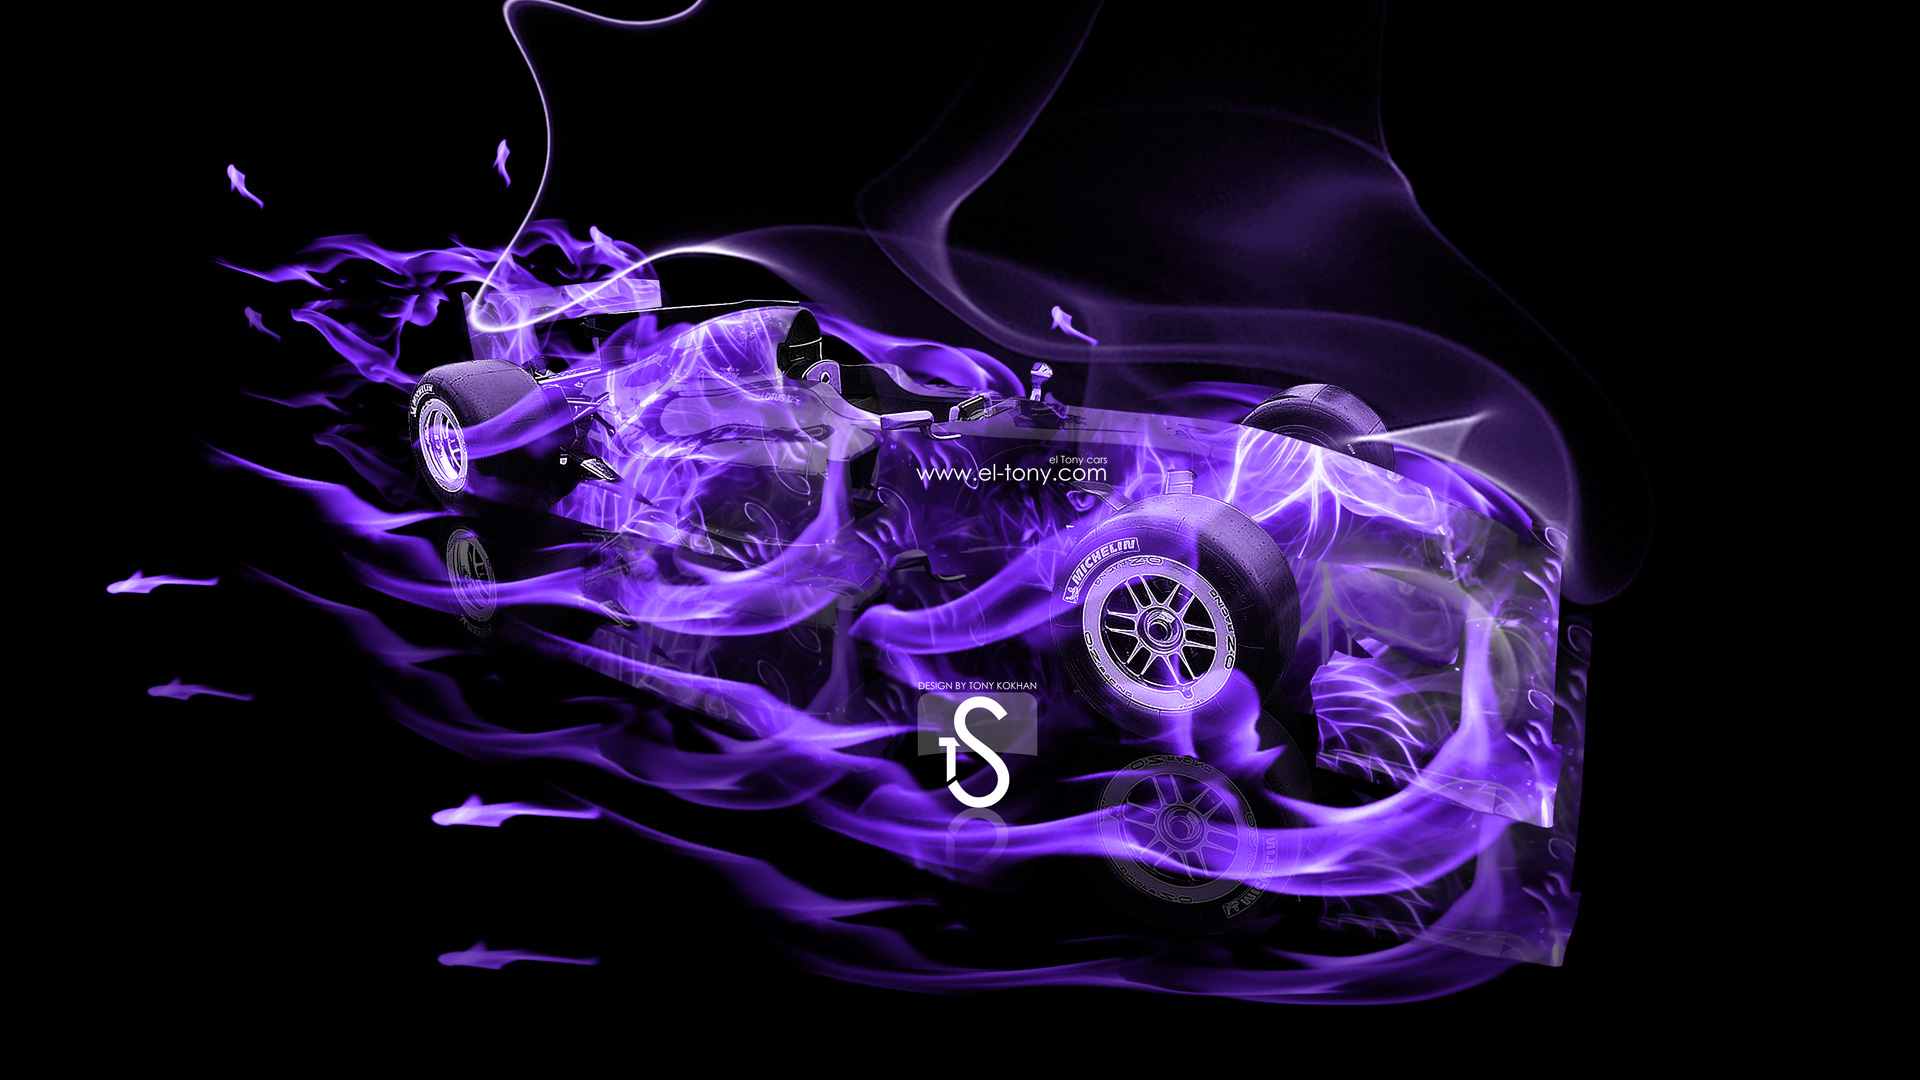 ... F1 Lotus Exos Violet Fire Abstract Car 2013